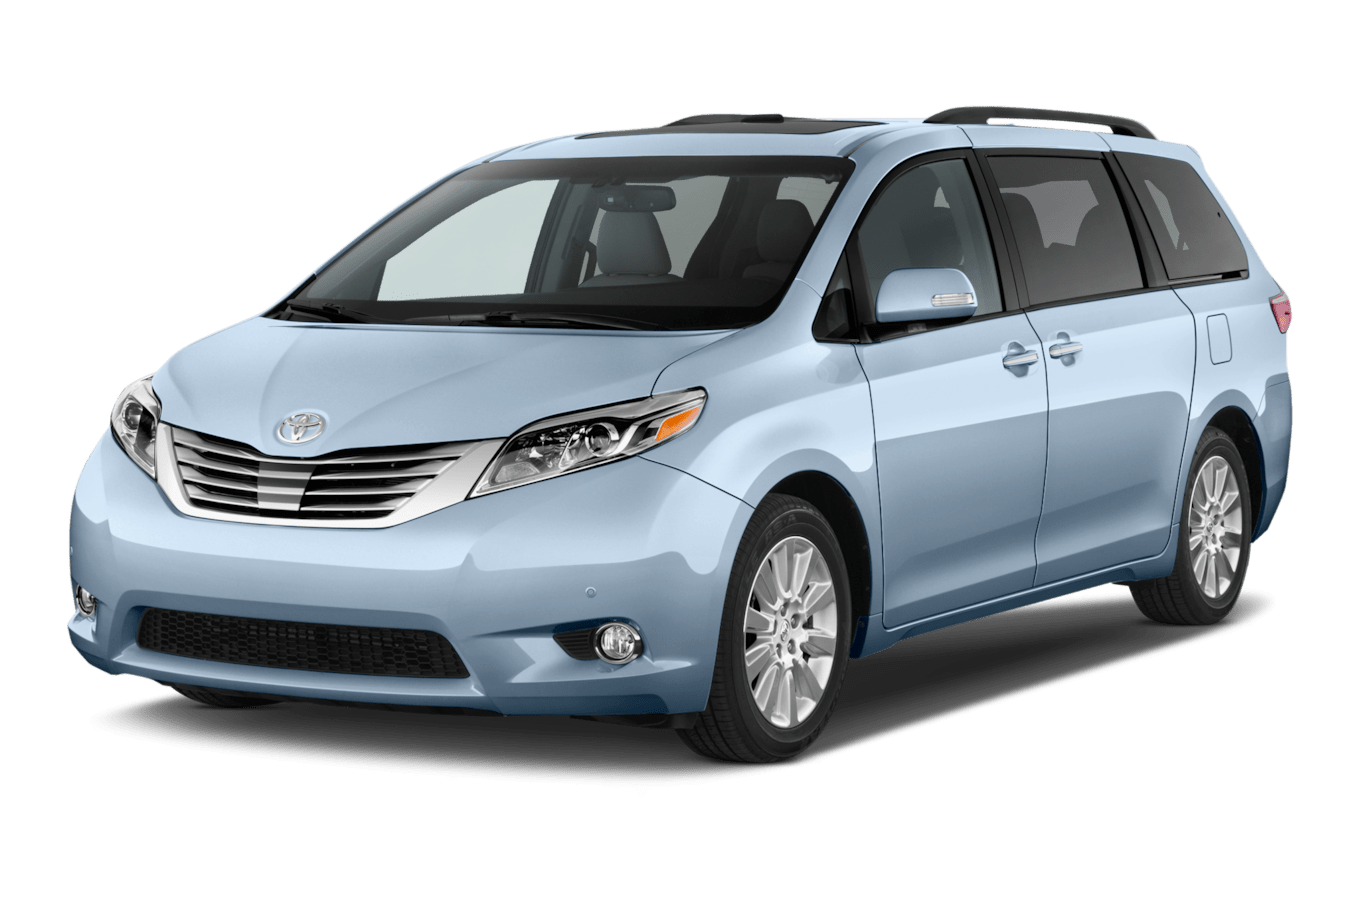 2015 toyota sienna reviews research sienna prices u0026 specs2015 toyota sienna trailer wiring diagram  [ 392:261 x 1360 Pixel ]